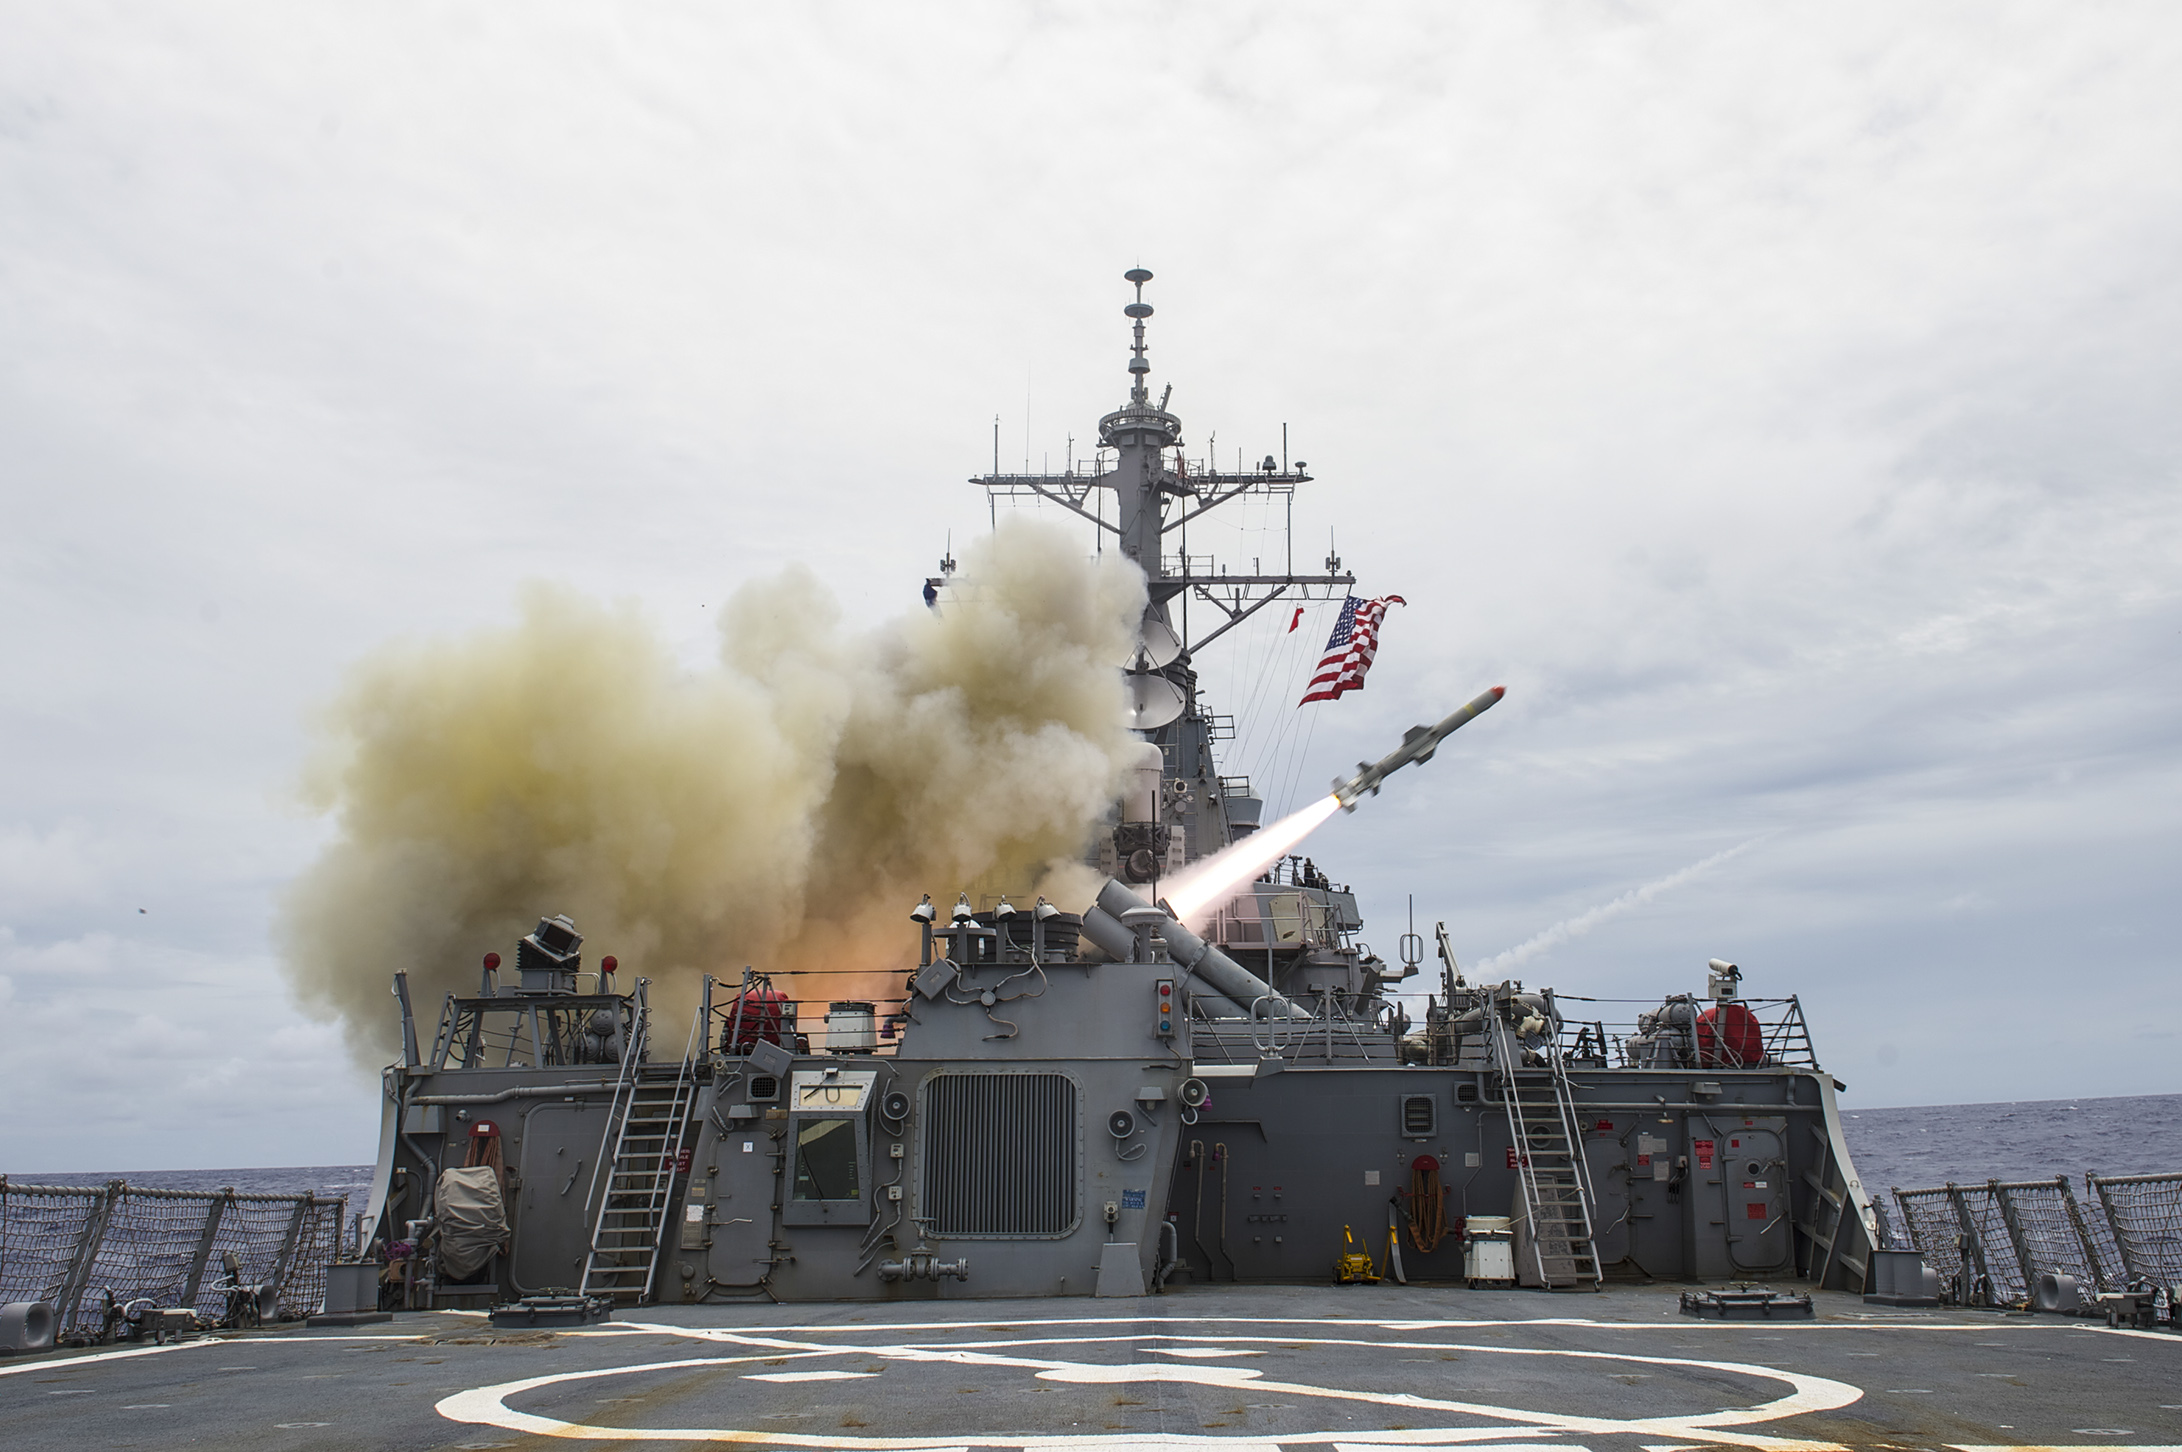 USS Stethem (DDG-63) fires a Harpoon missile during a sinking exercise as part of Valiant Shield 2014 on Sept. 15, 2014. US Navy Photo